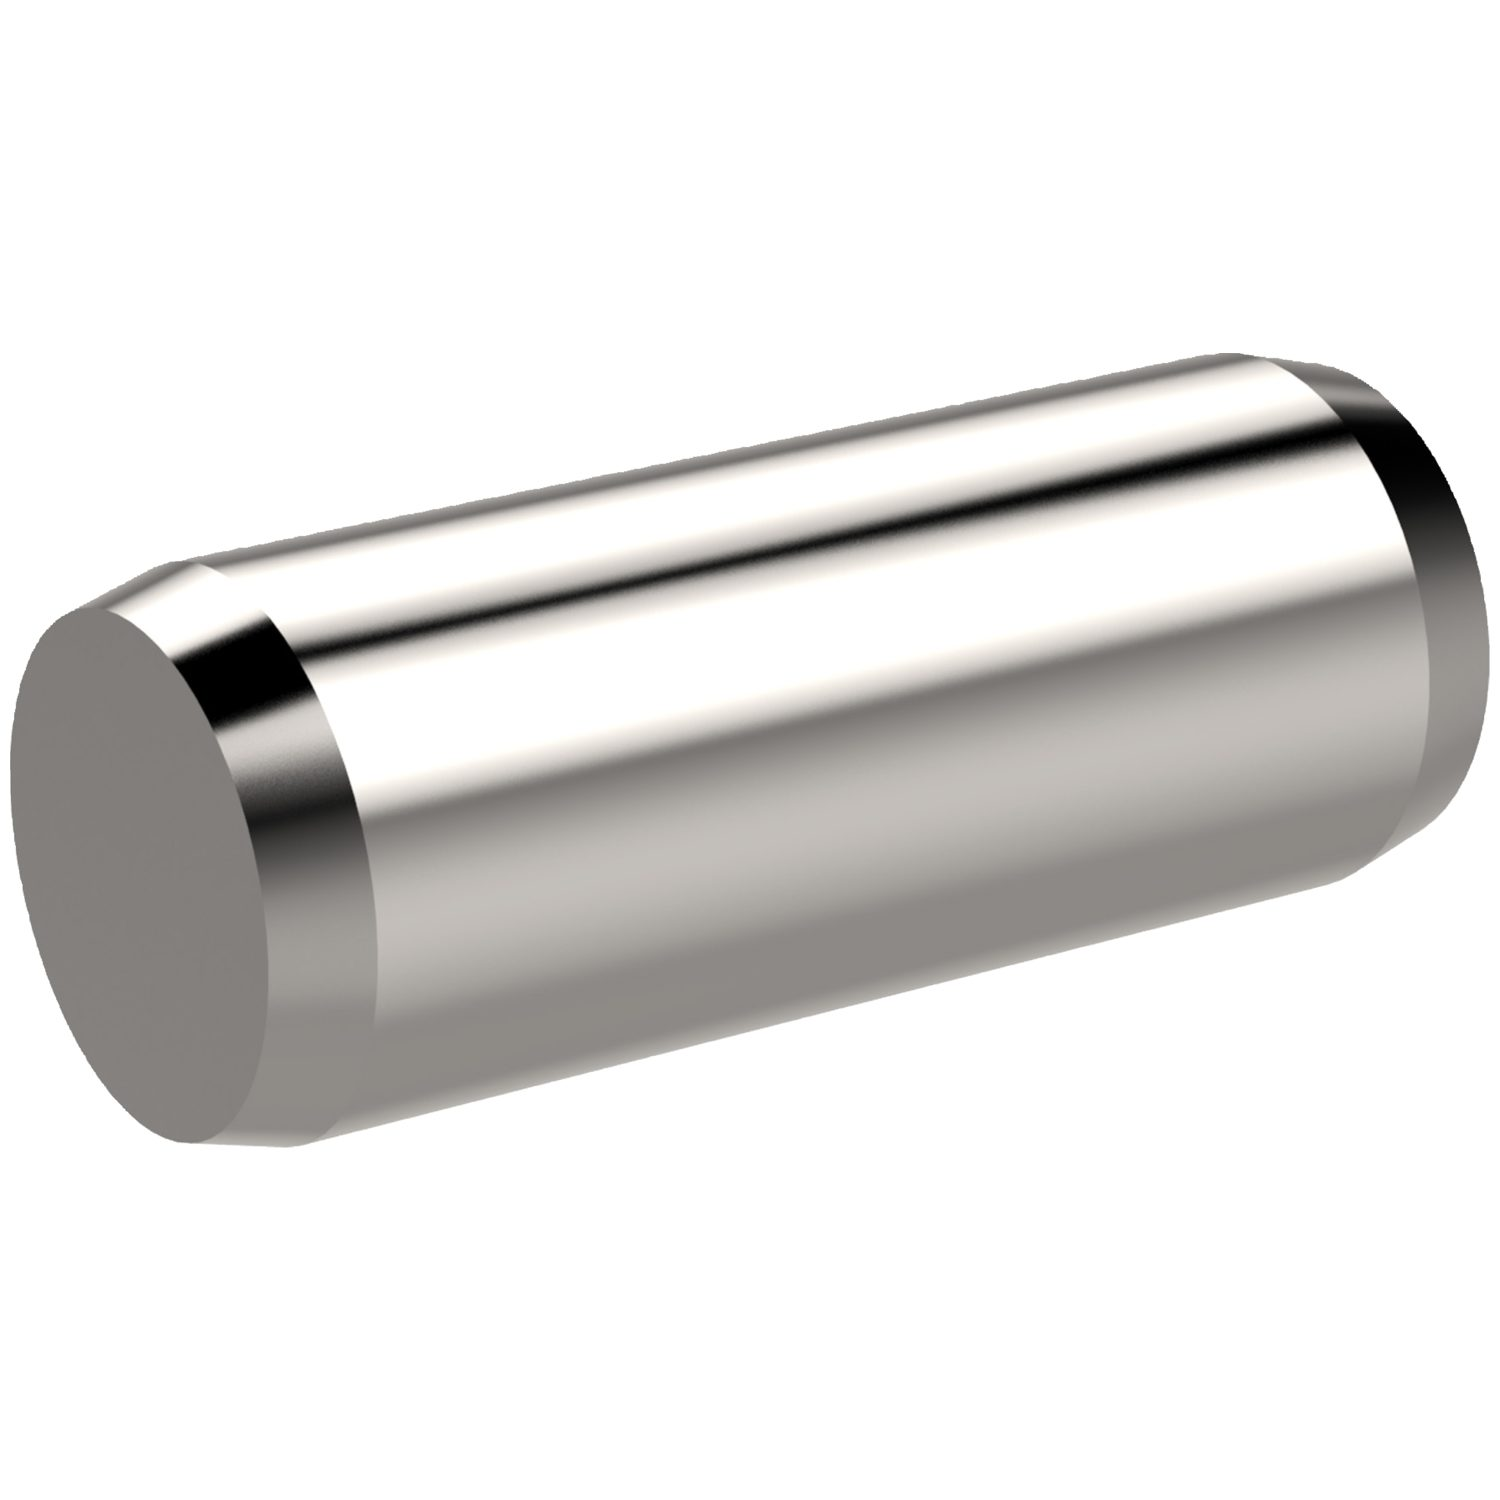 Stainless Dowel Pins